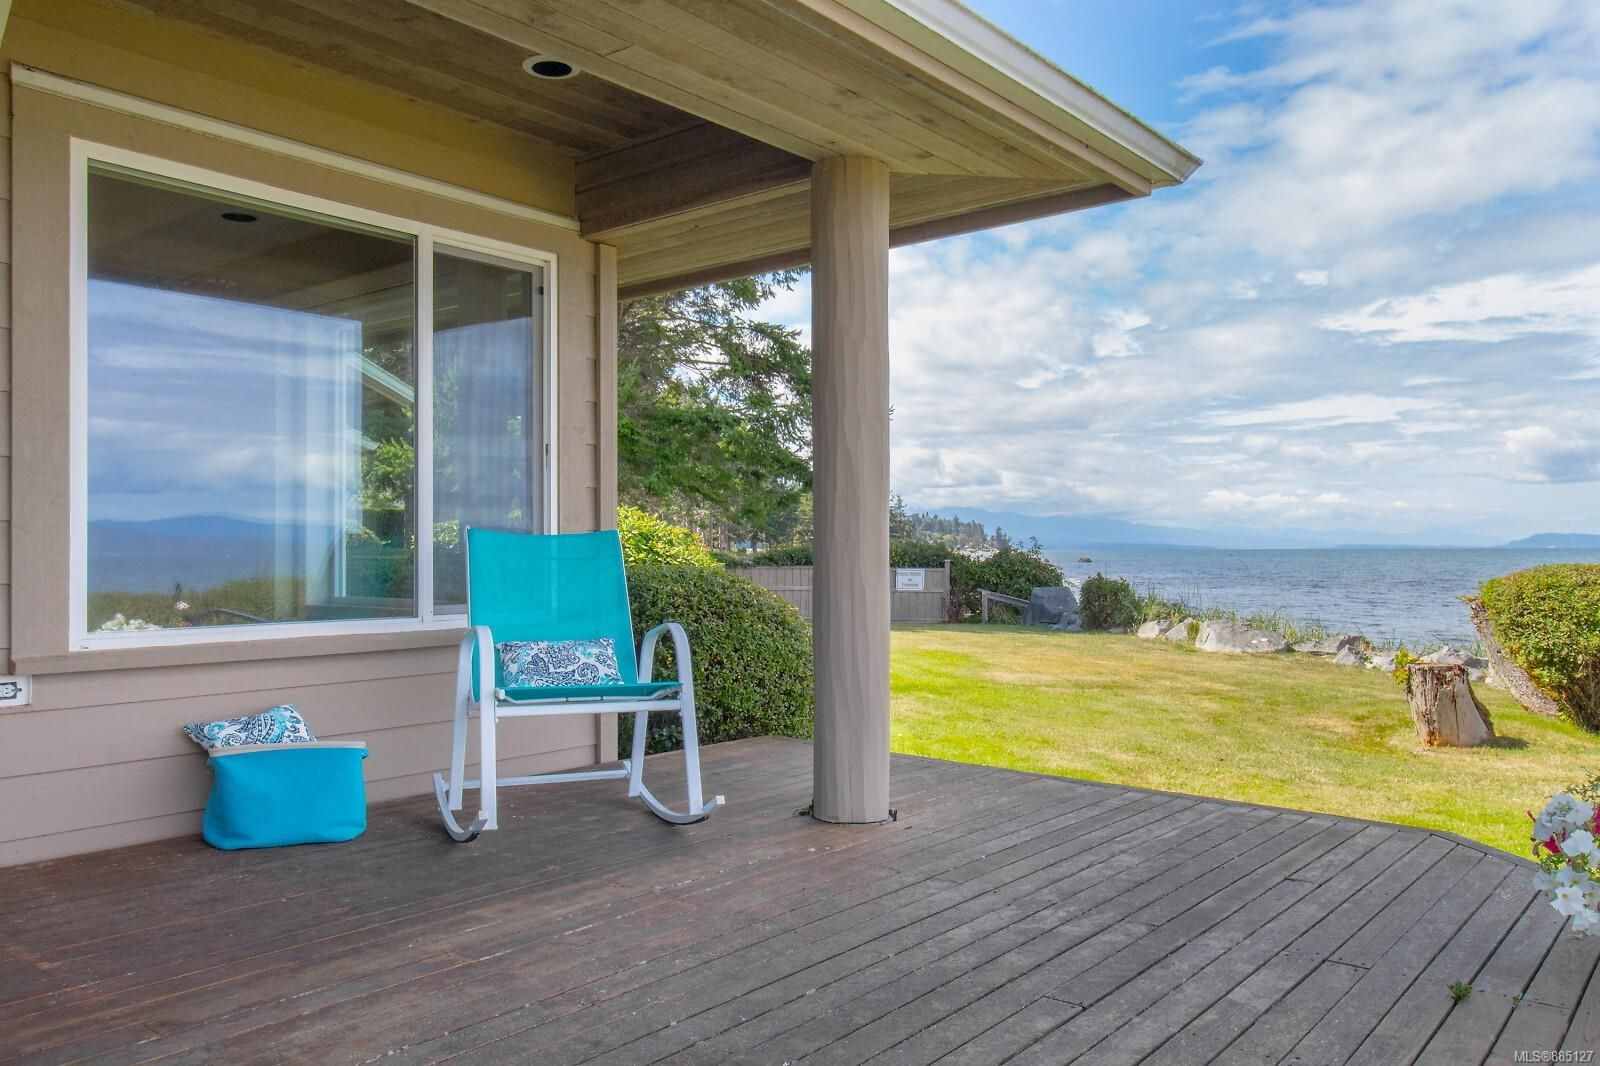 Photo 43: Photos: 26 529 Johnstone Rd in : PQ French Creek Row/Townhouse for sale (Parksville/Qualicum)  : MLS®# 885127